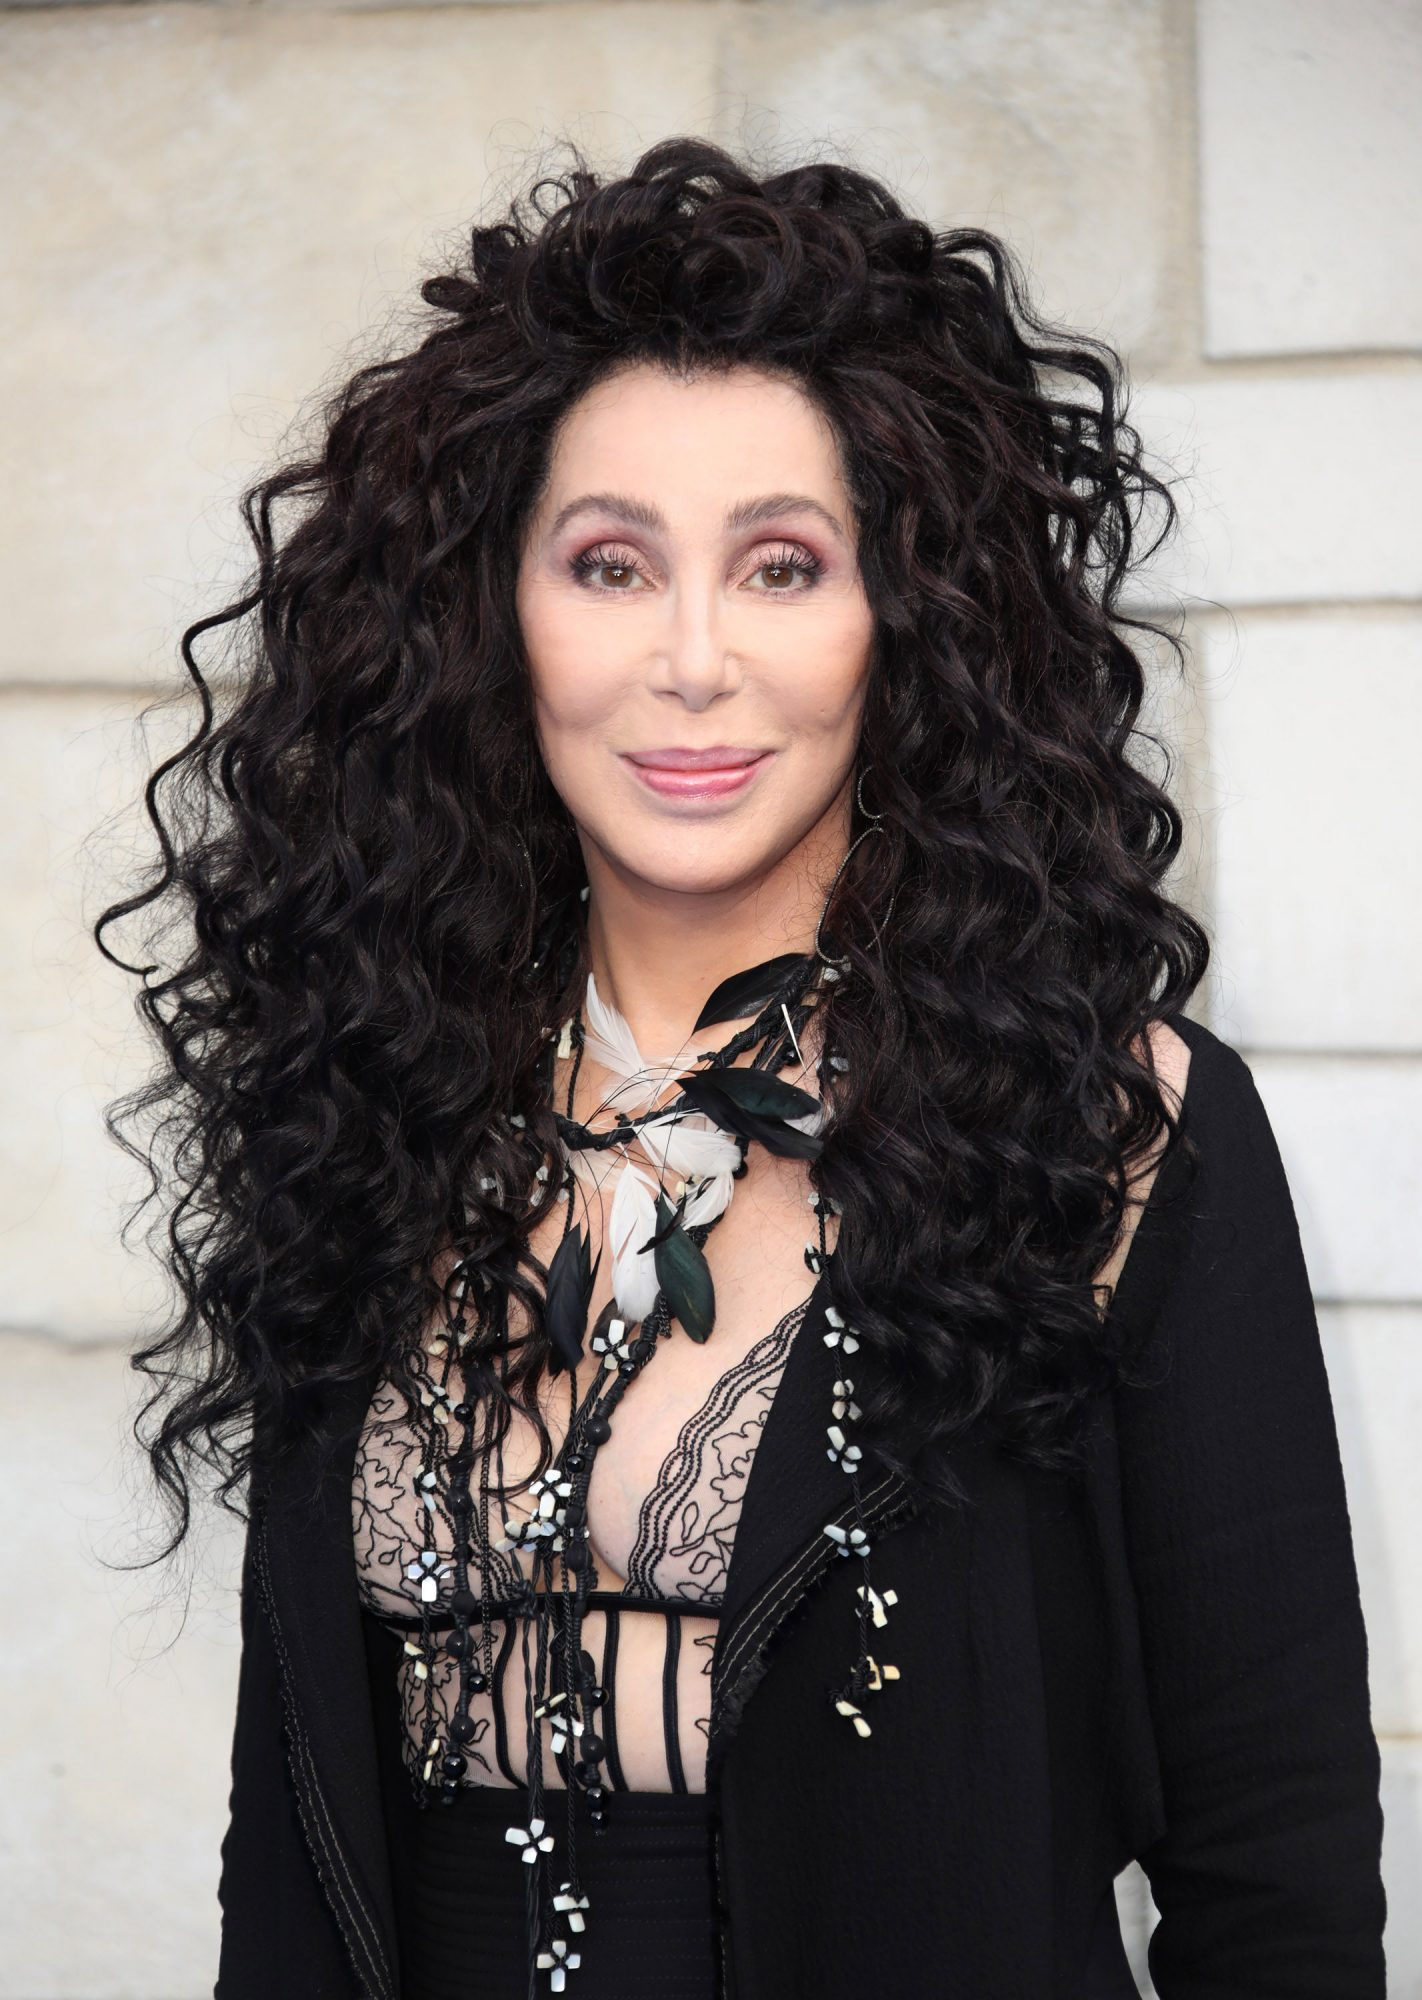 Cher Loves These $20 Pants from Amazon That Make Her Behind Look 'BootyFull'